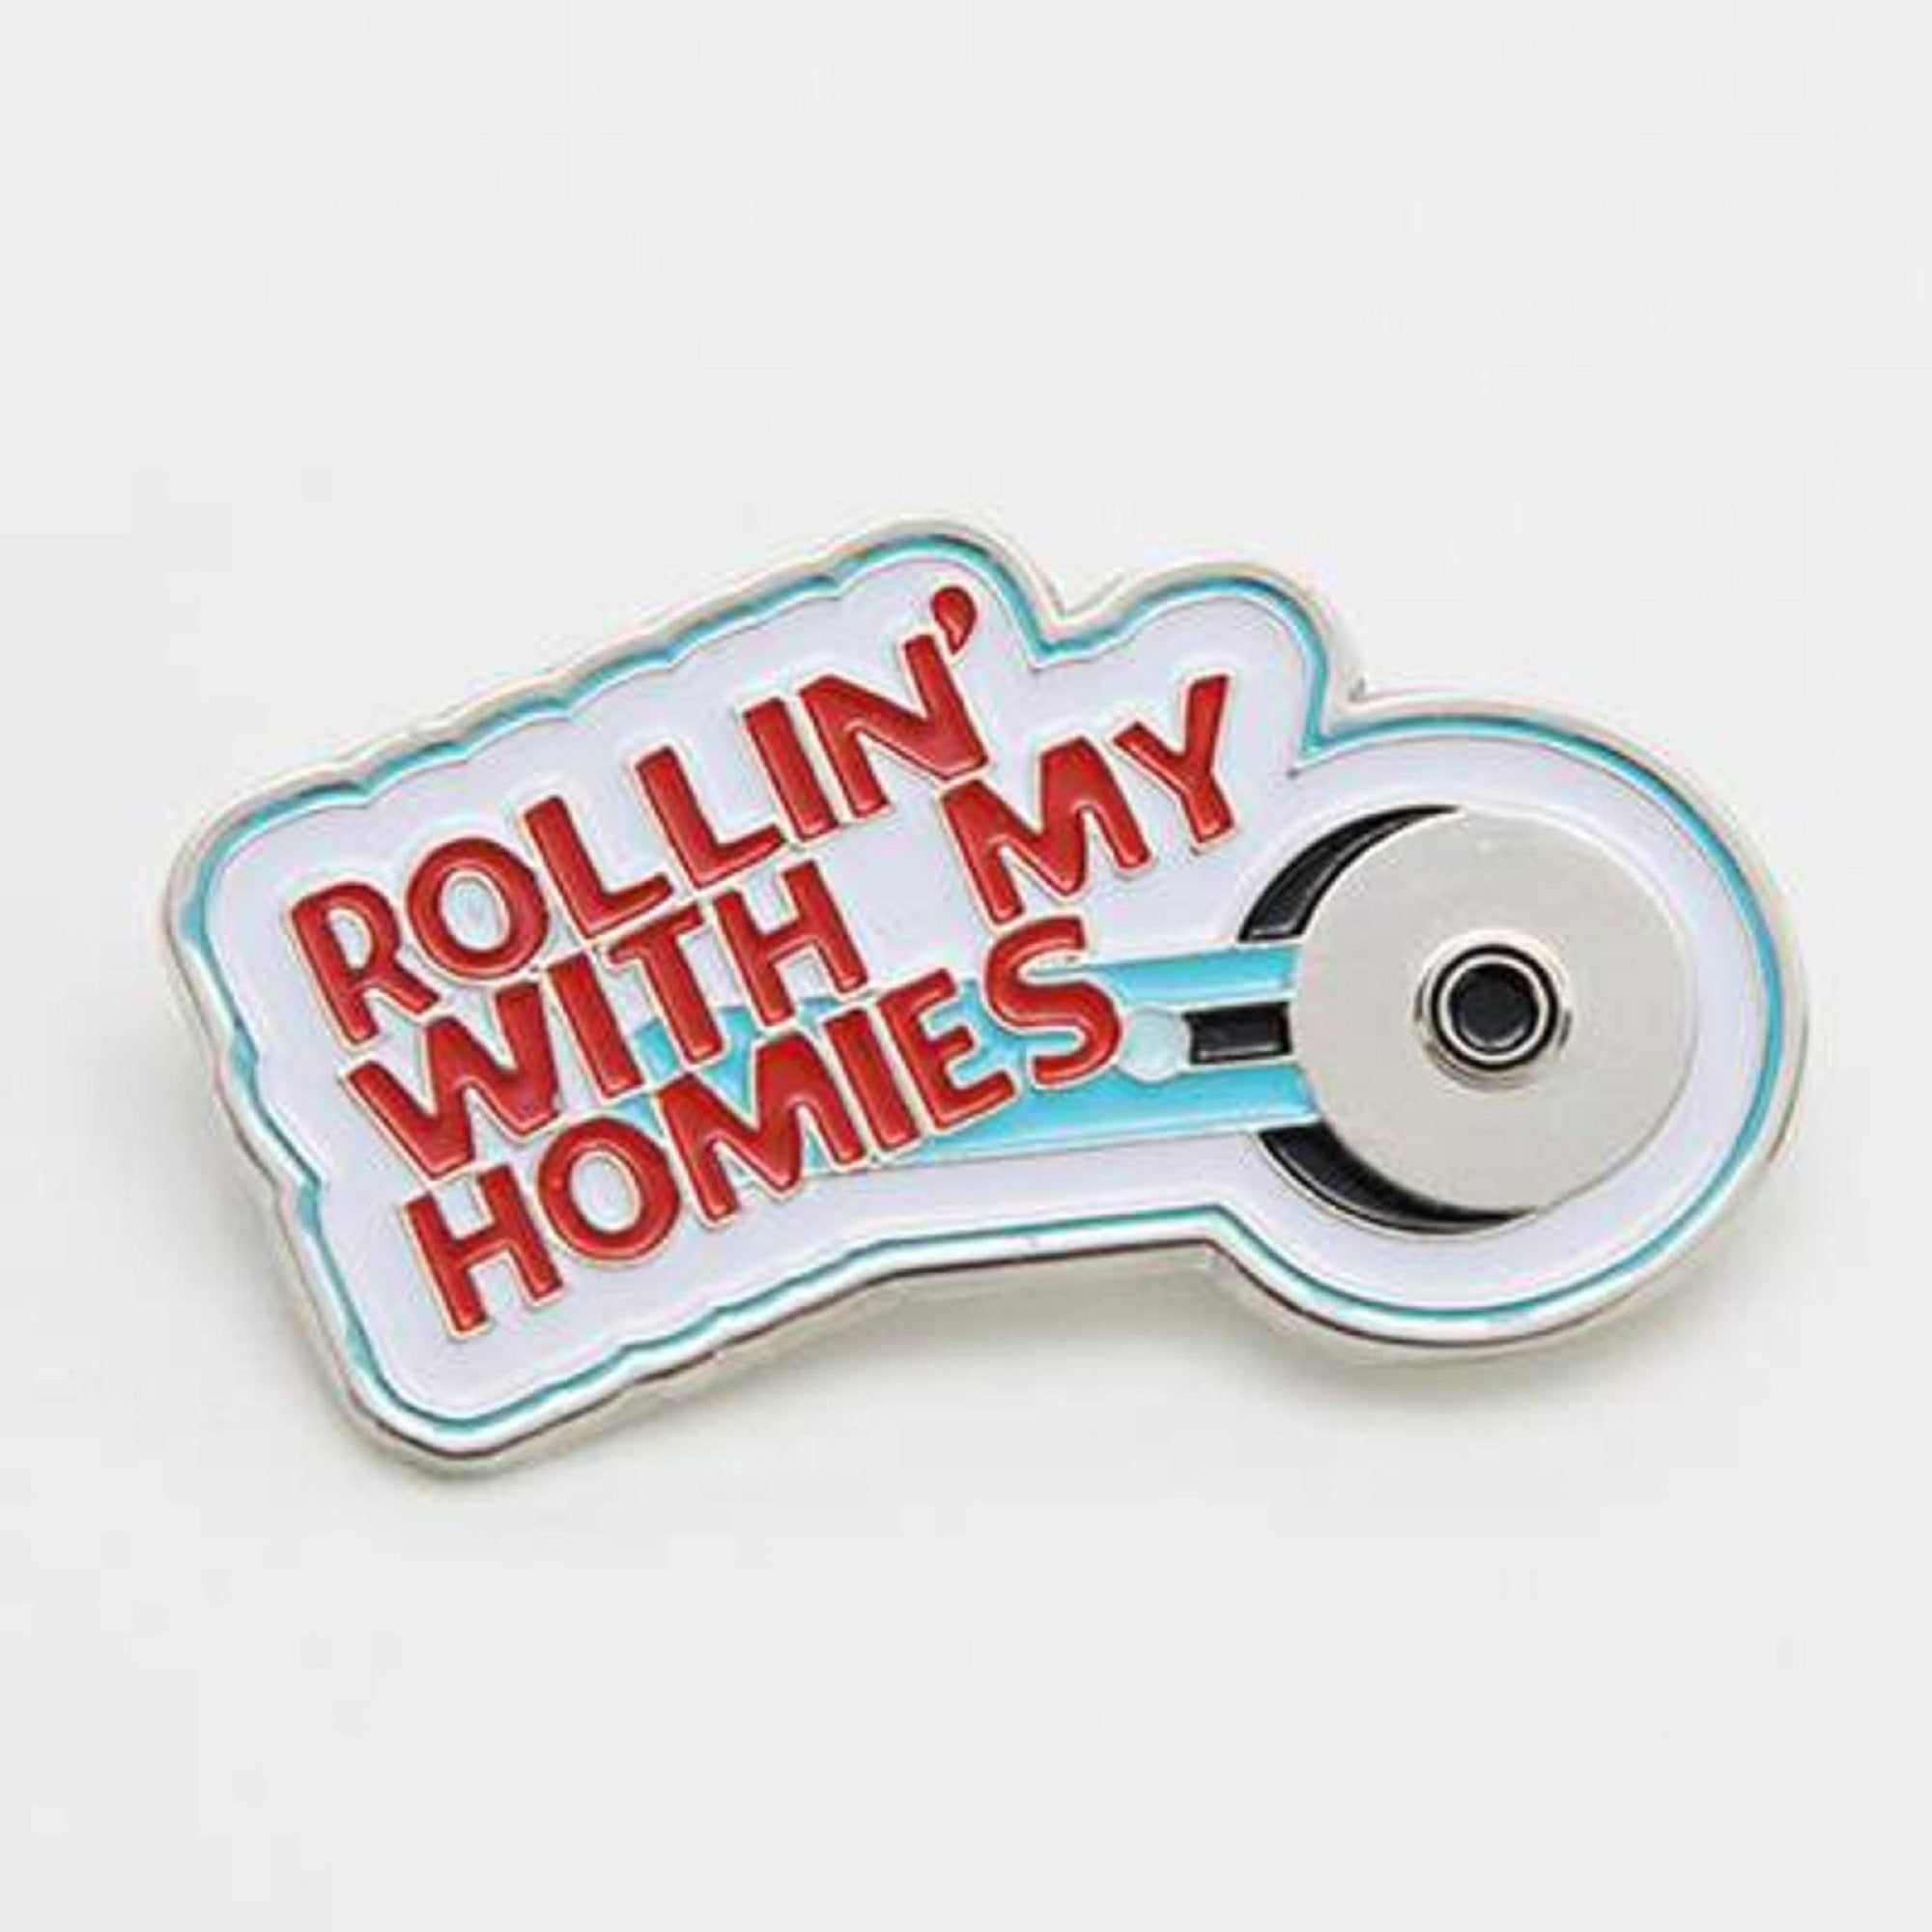 Rollin' With My Homies - Riley Blake Enamel Pin - Seamstress - Quilter - Rotary Cutter Hat Pin by JdawnsFabricsAndMore on Etsy